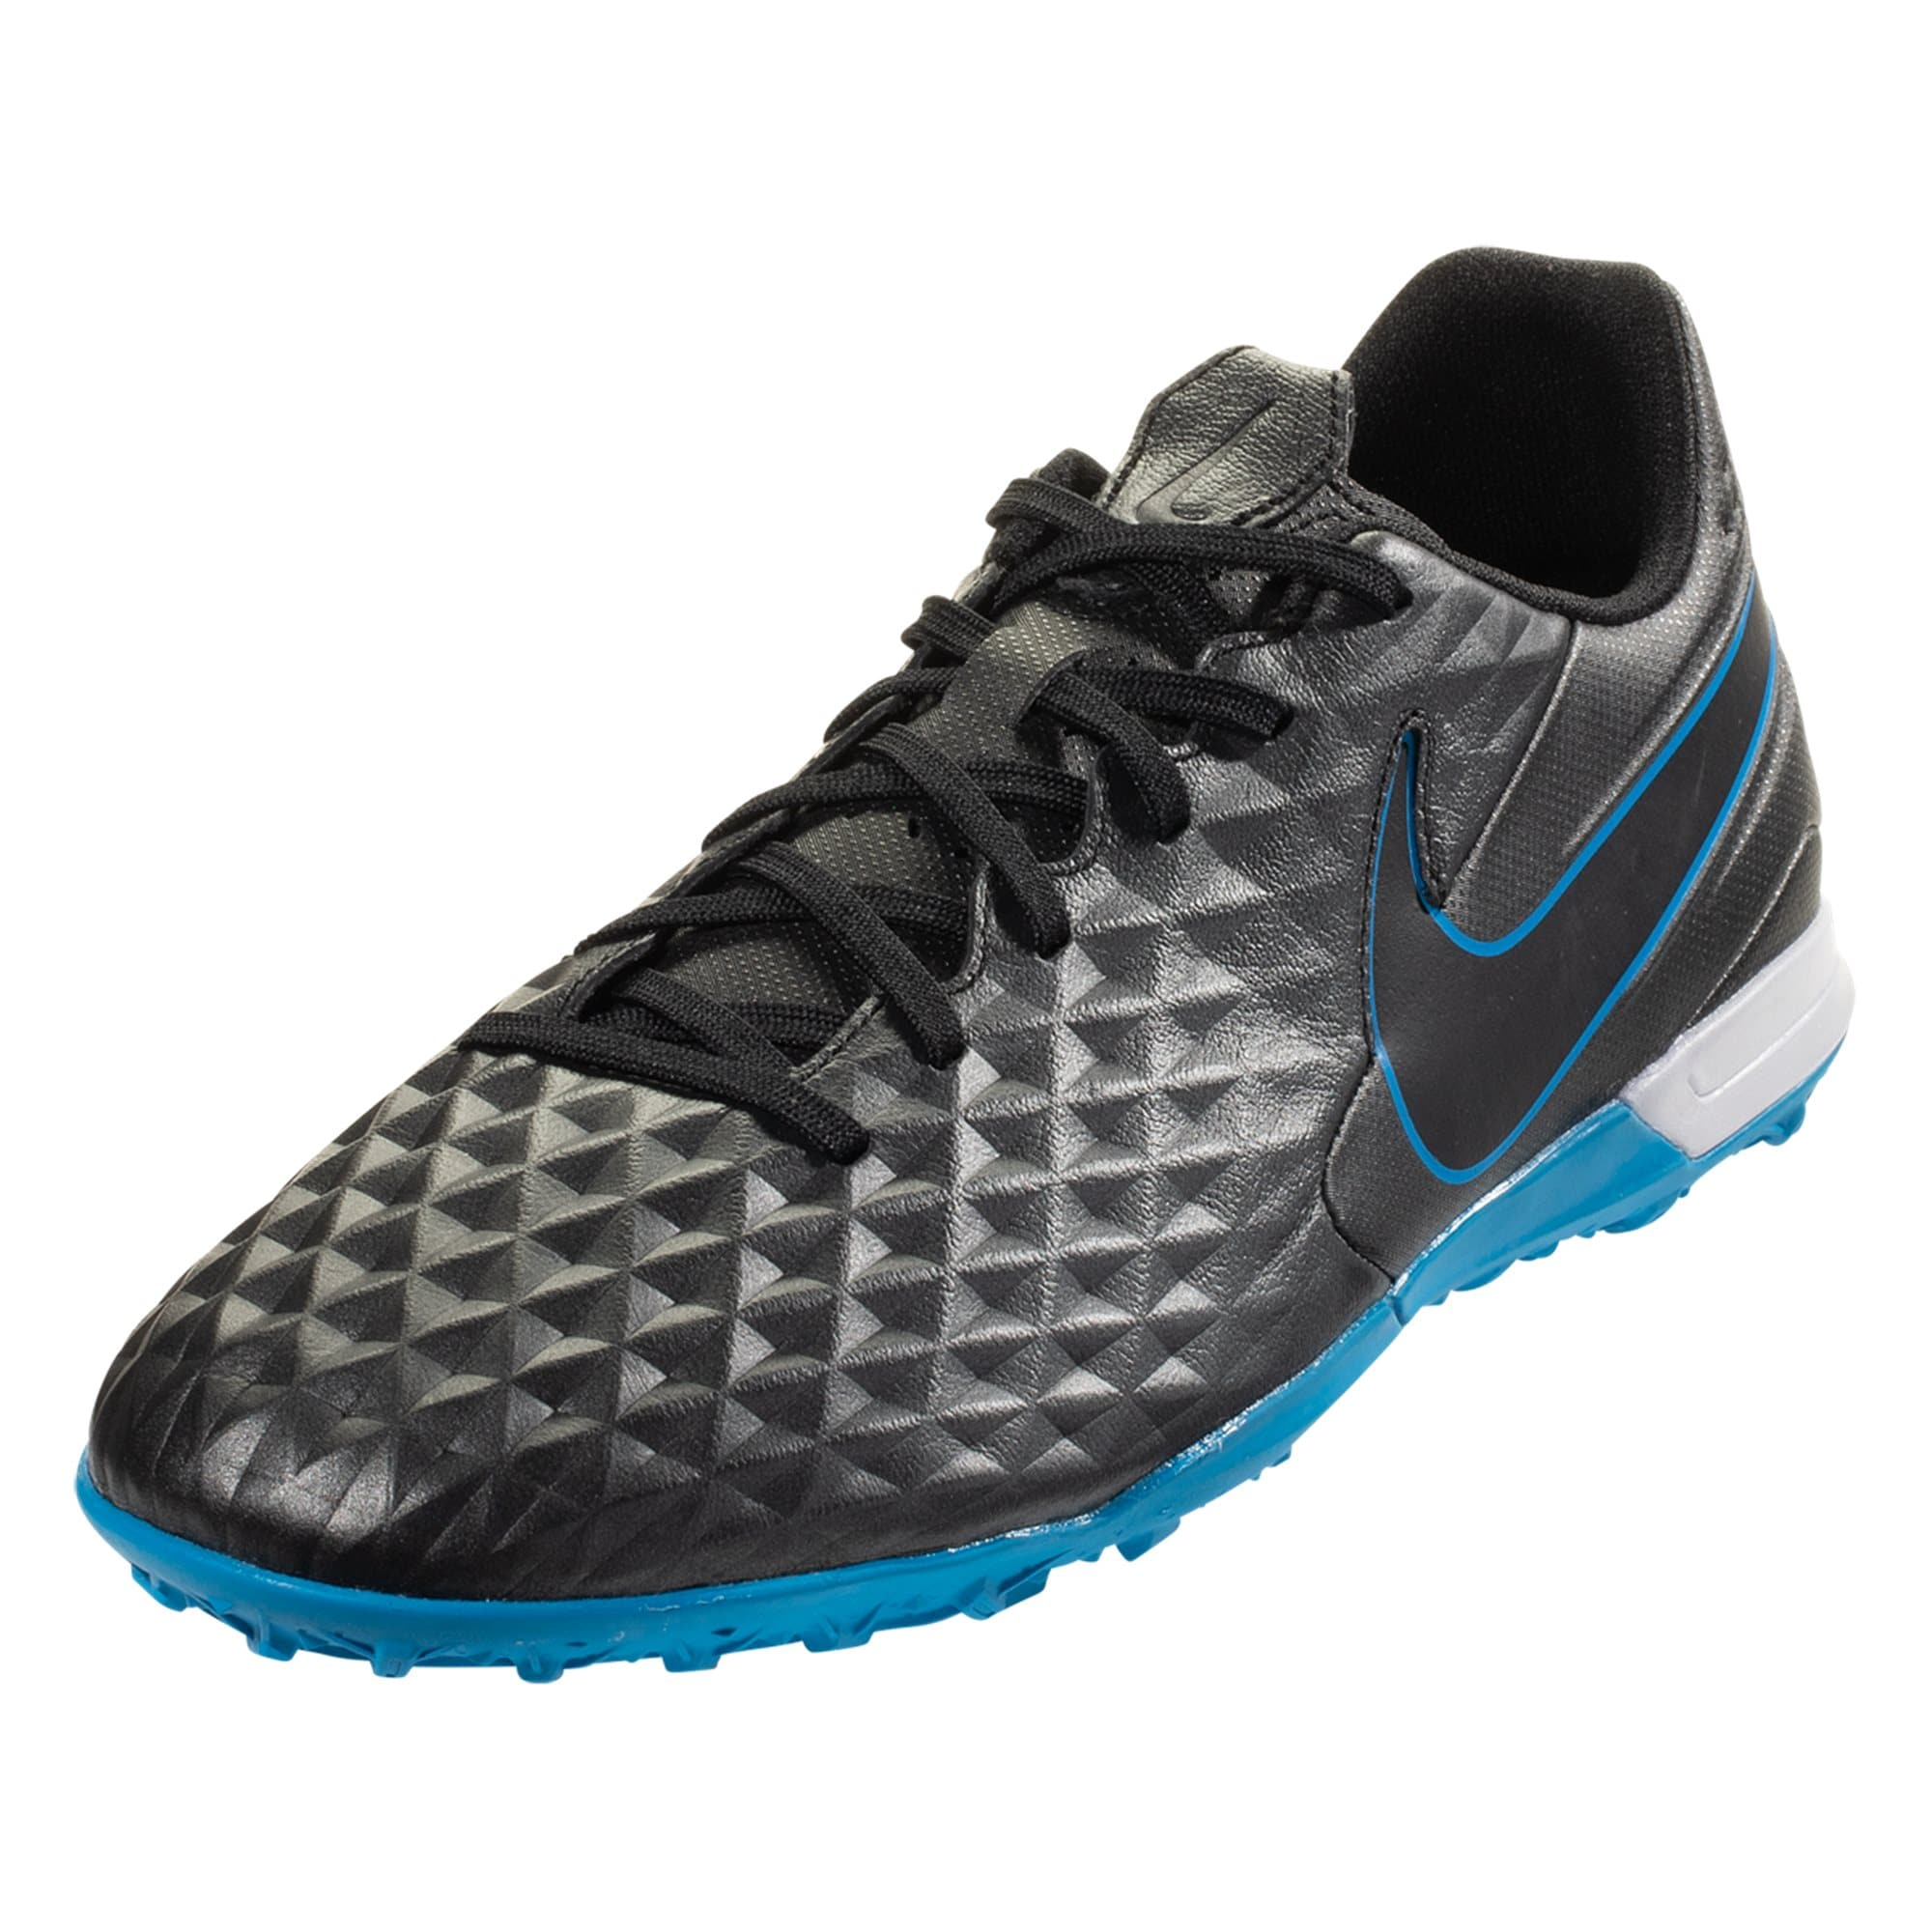 Nike Tiempo Legend 8 Pro TF Artificial Turf Shoes - Black / Blue